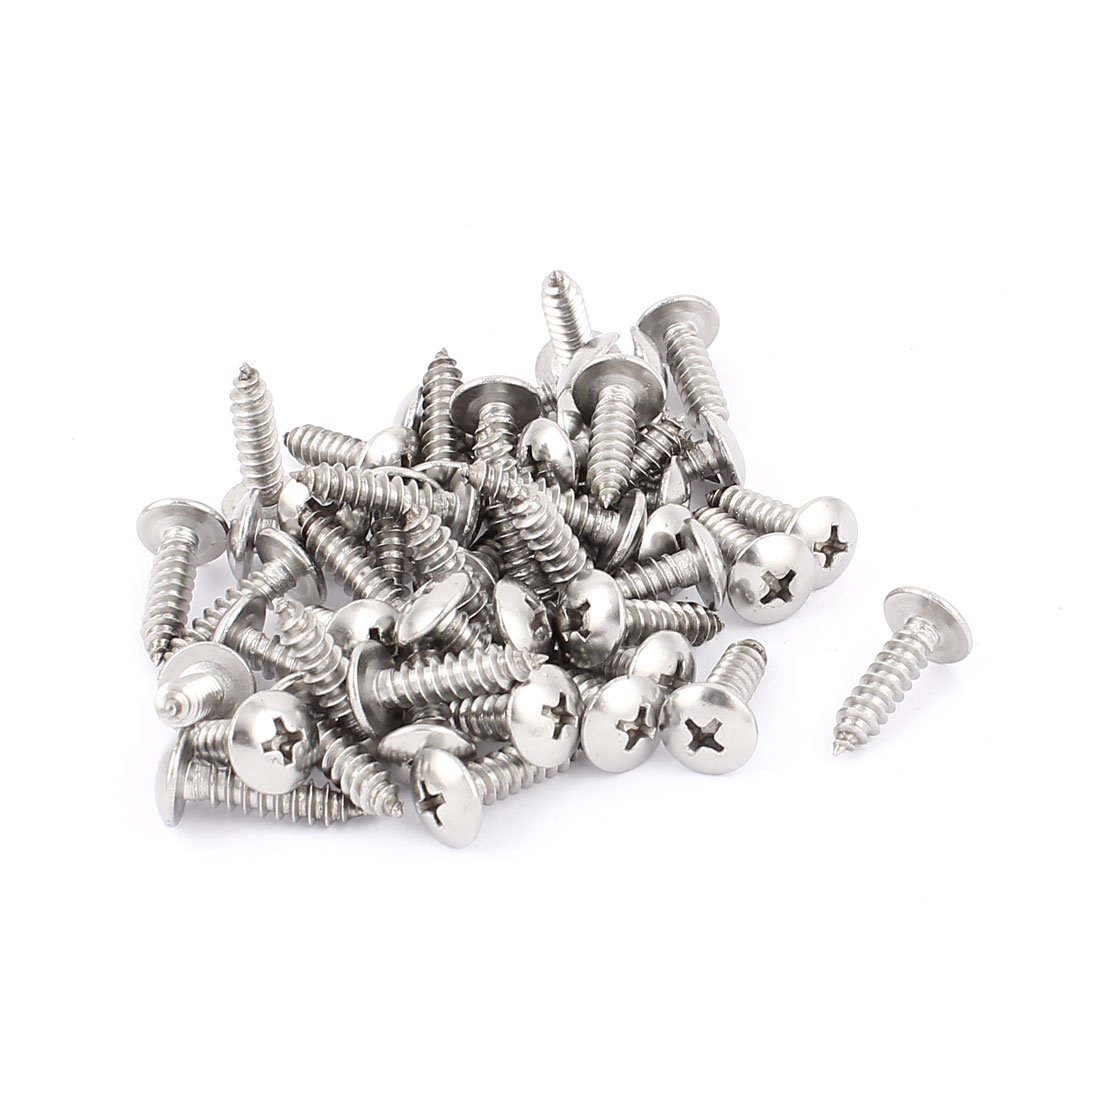 4.8mm x 20mm Stainless Steel Phillips Truss Head Self Tapping Screw 50 Pcs